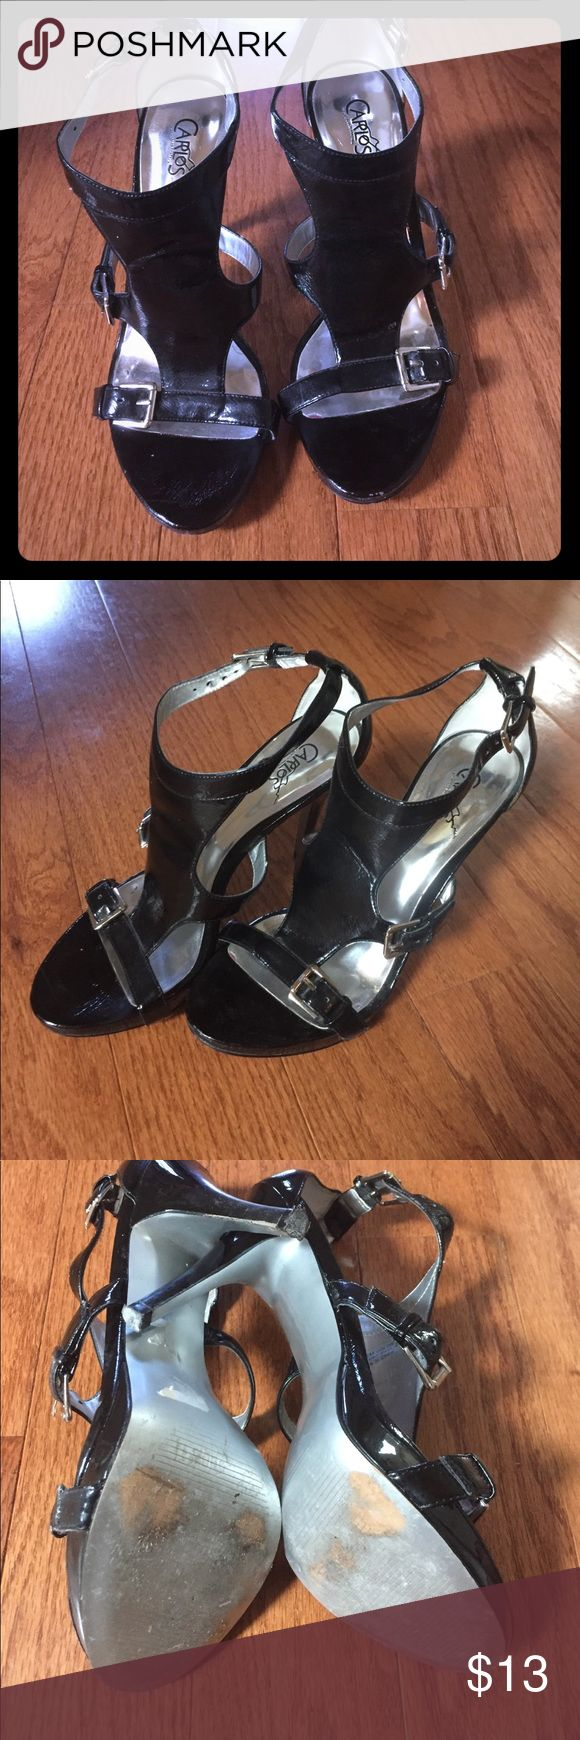 Black Carlos Santana Heels Carlos Santana Size 7.5 Black Heels. Super cute! Worn 3-4 times. A couple scuffs but very minimal wear overall. Just looking to clear out my closet and don't really wear them. Carlos Santana Shoes Heels